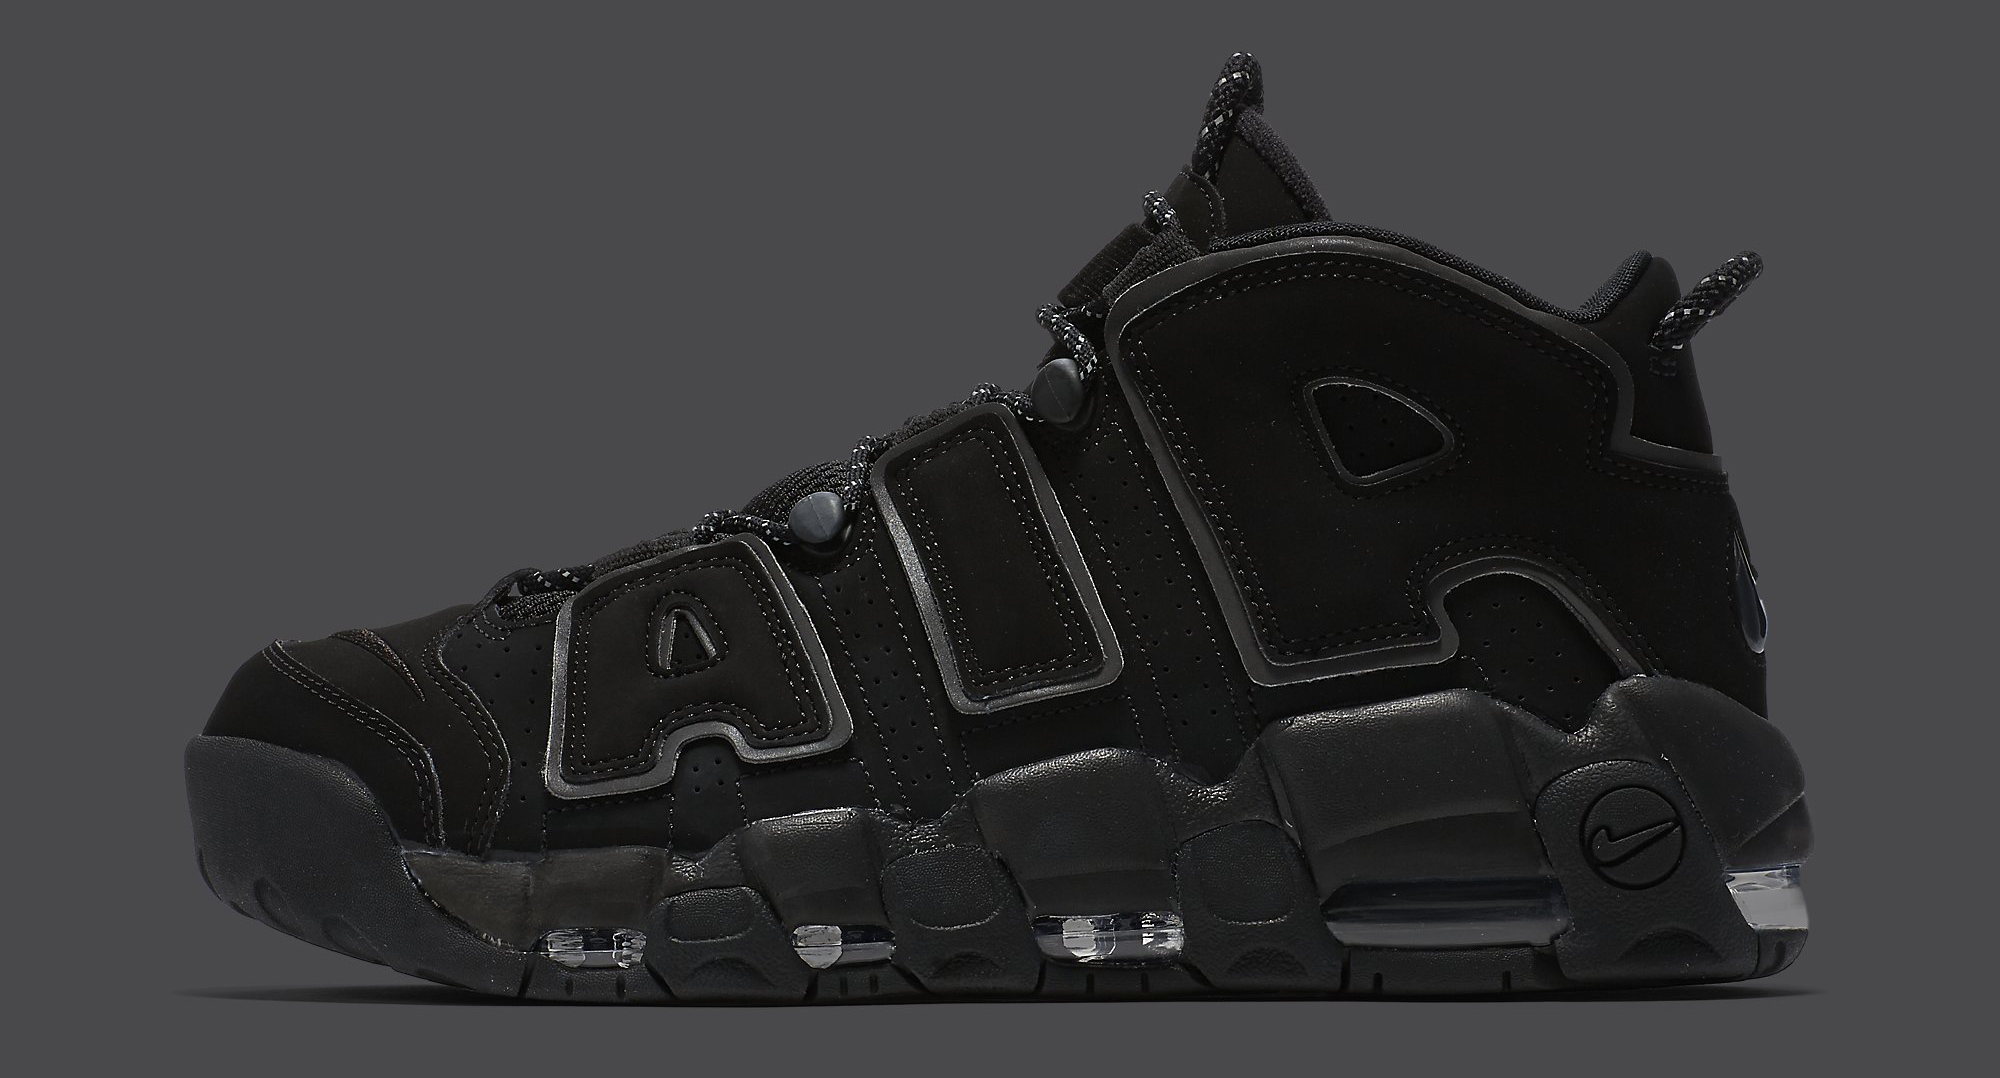 huge selection of 4ed7a 3f80c Nike Air More Uptempo Black Reflective 414962-004 Profile